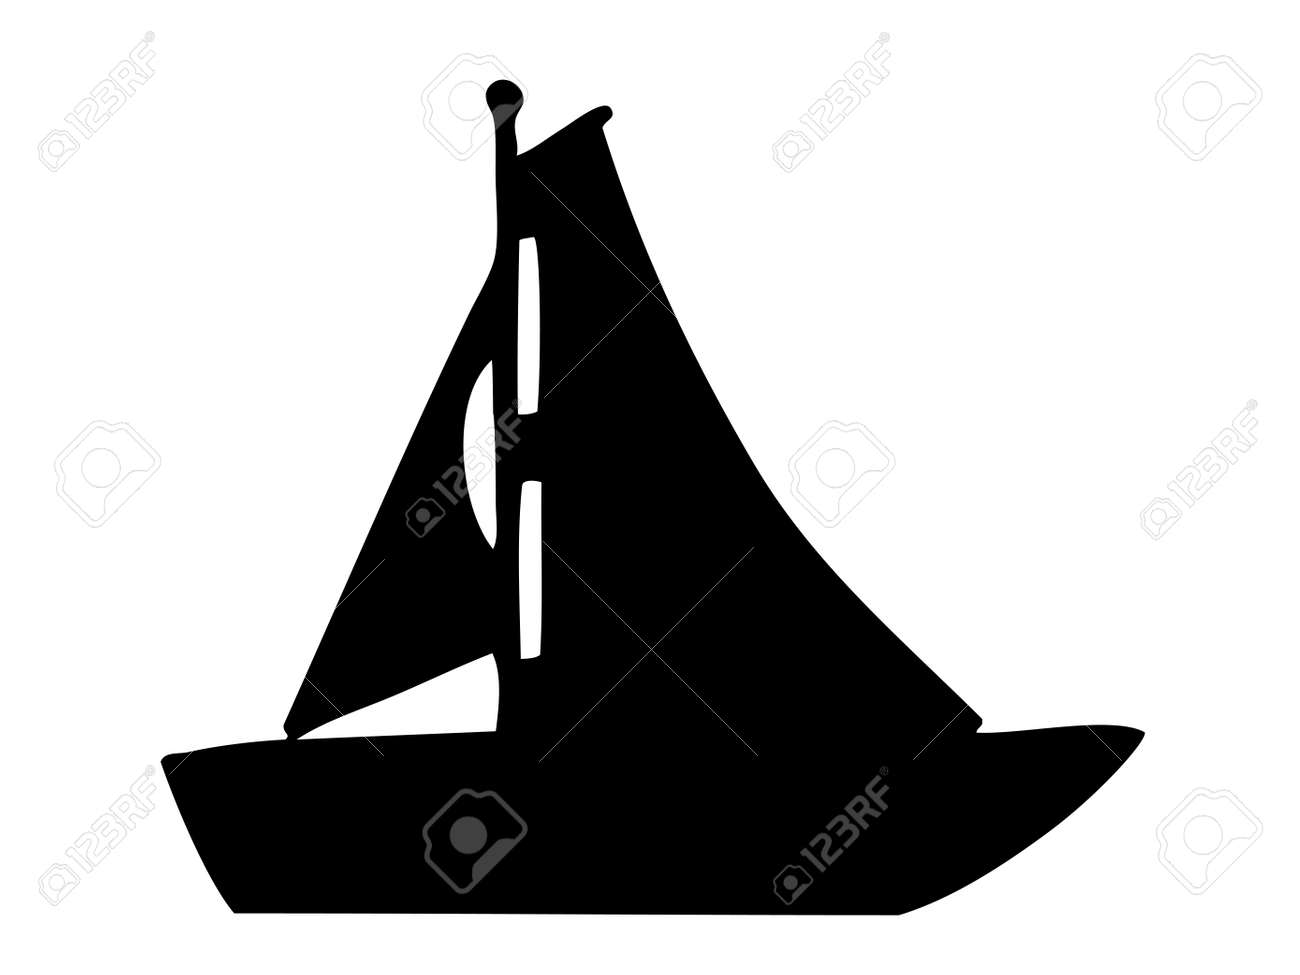 sailboat silhouette royalty free cliparts, vectors, and stock